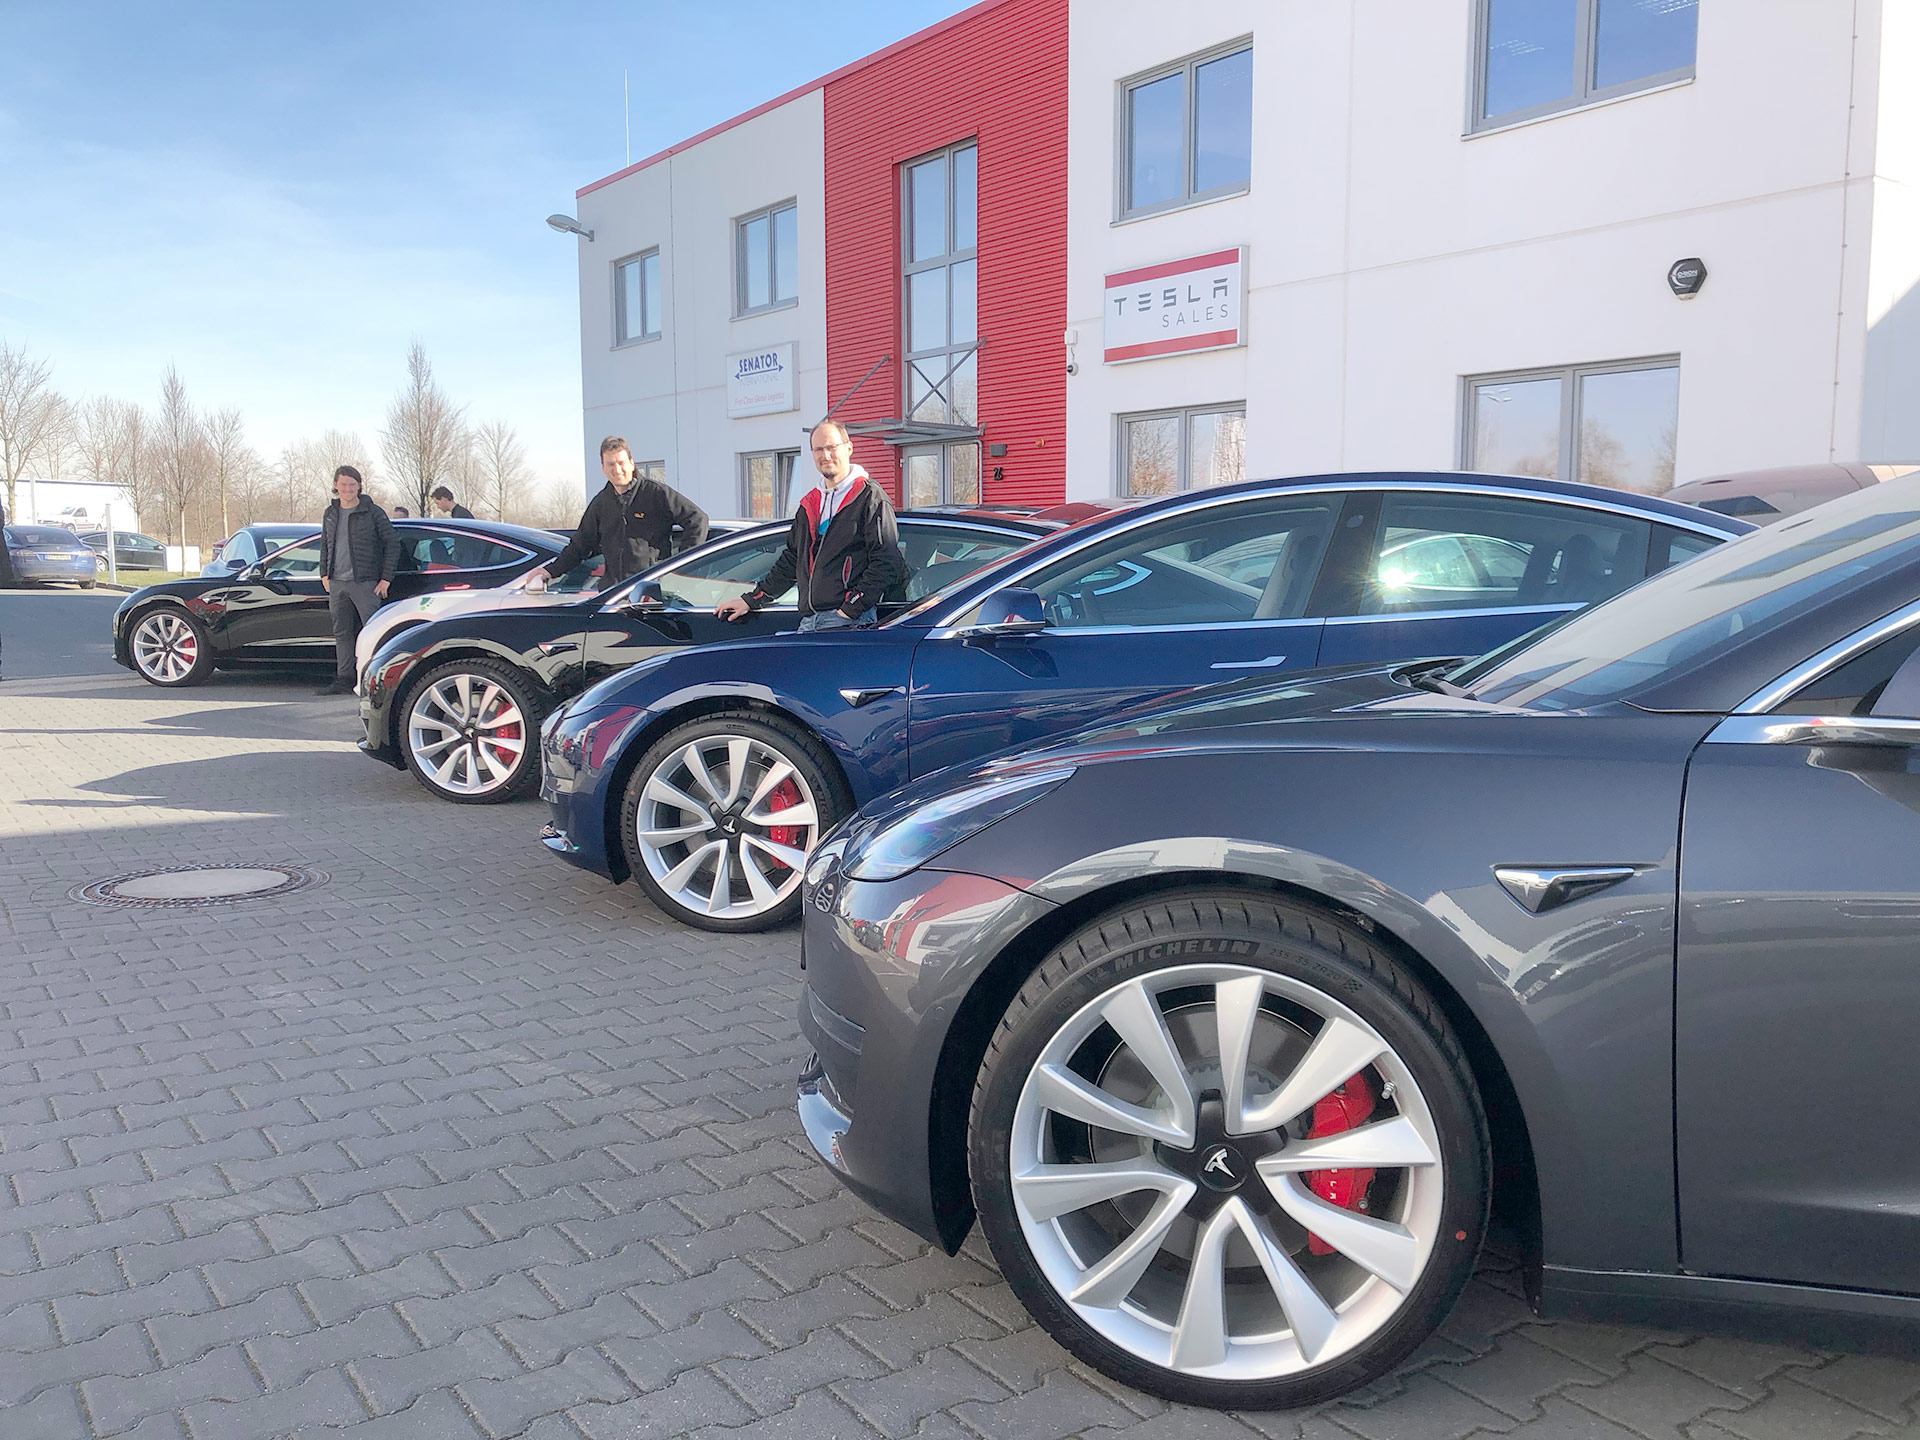 Germany's top car rental company buys 100 Tesla Model 3 EVs